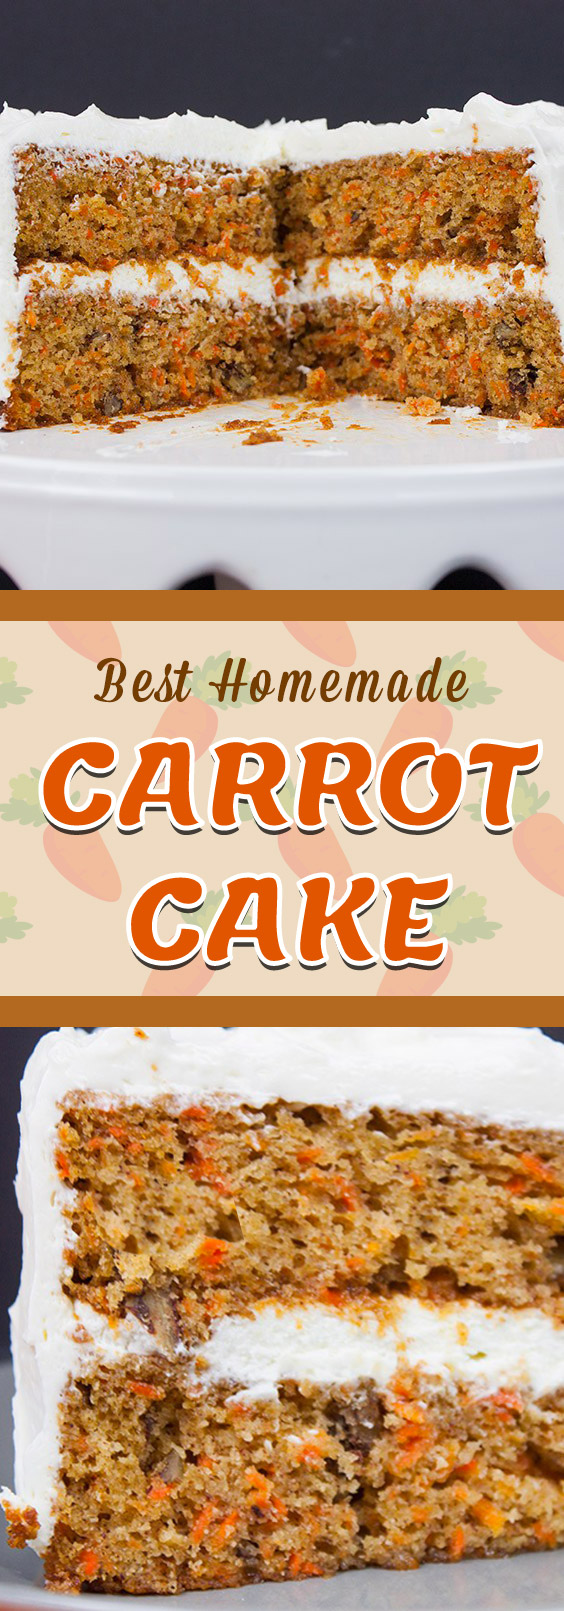 Best Homemade Carrot Cake - Look no further! Moist, tender, perfectly spiced topped with a whipped cream cheese frosting. #dessert #recipe #cake #carrot #easter #christmas